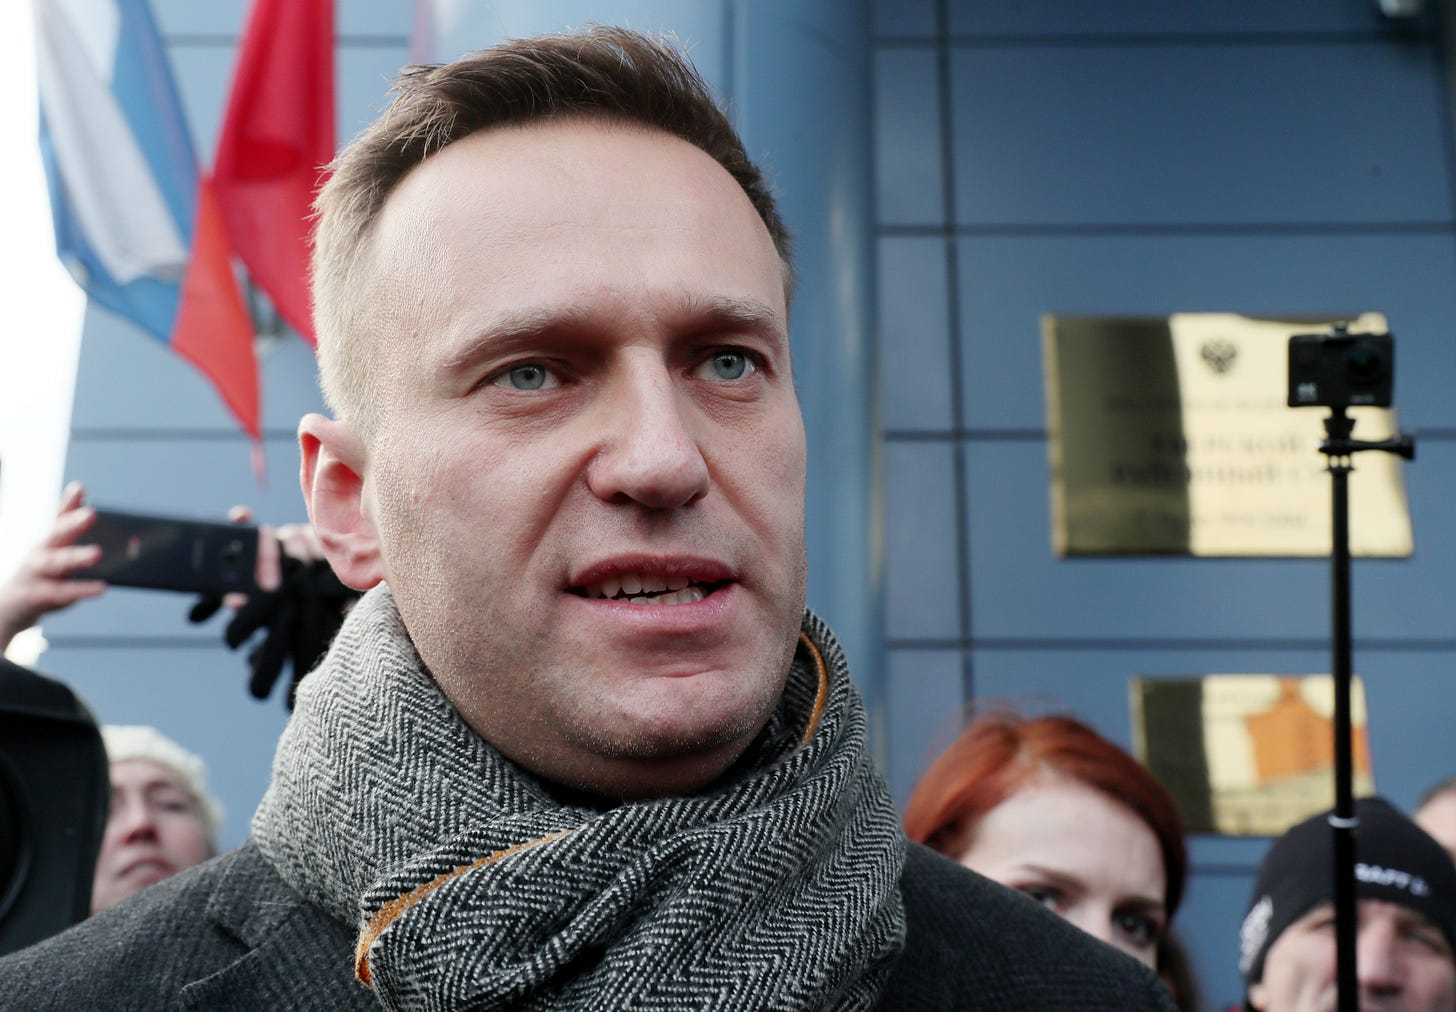 MOSCOW, RUSSIA - DECEMBER 6, 2019: Opposition activist Alexei Navalny is pictured outside Moscow's Meshchansky District court where a sentincing hearing for opposition demonstrator Vladimir Yemelyanov (not pictured) took place; Yemelyanov, who took part in an unsanctioned opposition rally in central Moscow on 27 July 2019, is charged with use of violence against a representative of the power; according to the investigation, during the opposition rally Yemelyanov grabbed an OMON (riot police) officer by the back of his bulletproof vest and pulled him. Vladimir Gerdo/TASS (Photo by Vladimir Gerdo\TASS via Getty Images)